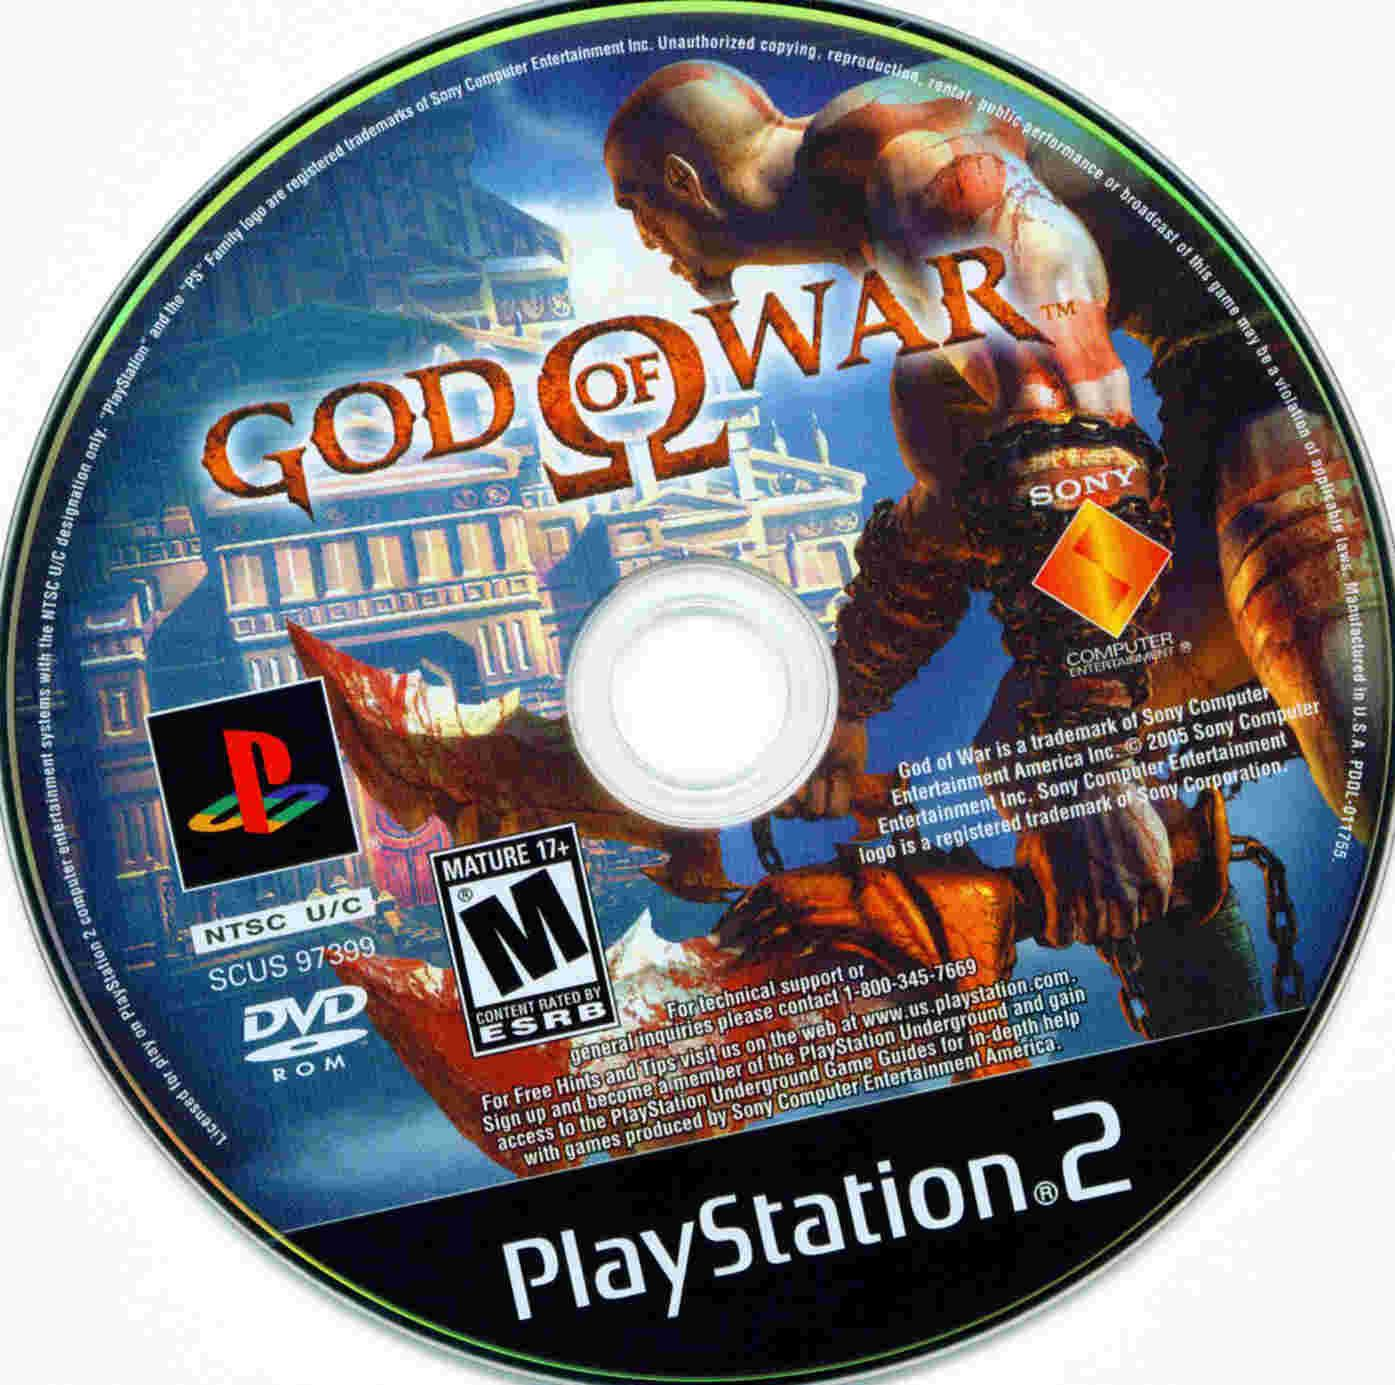 Buy God Of War 1 ( PS2 ) Online at Best Price in India - Snapdeal